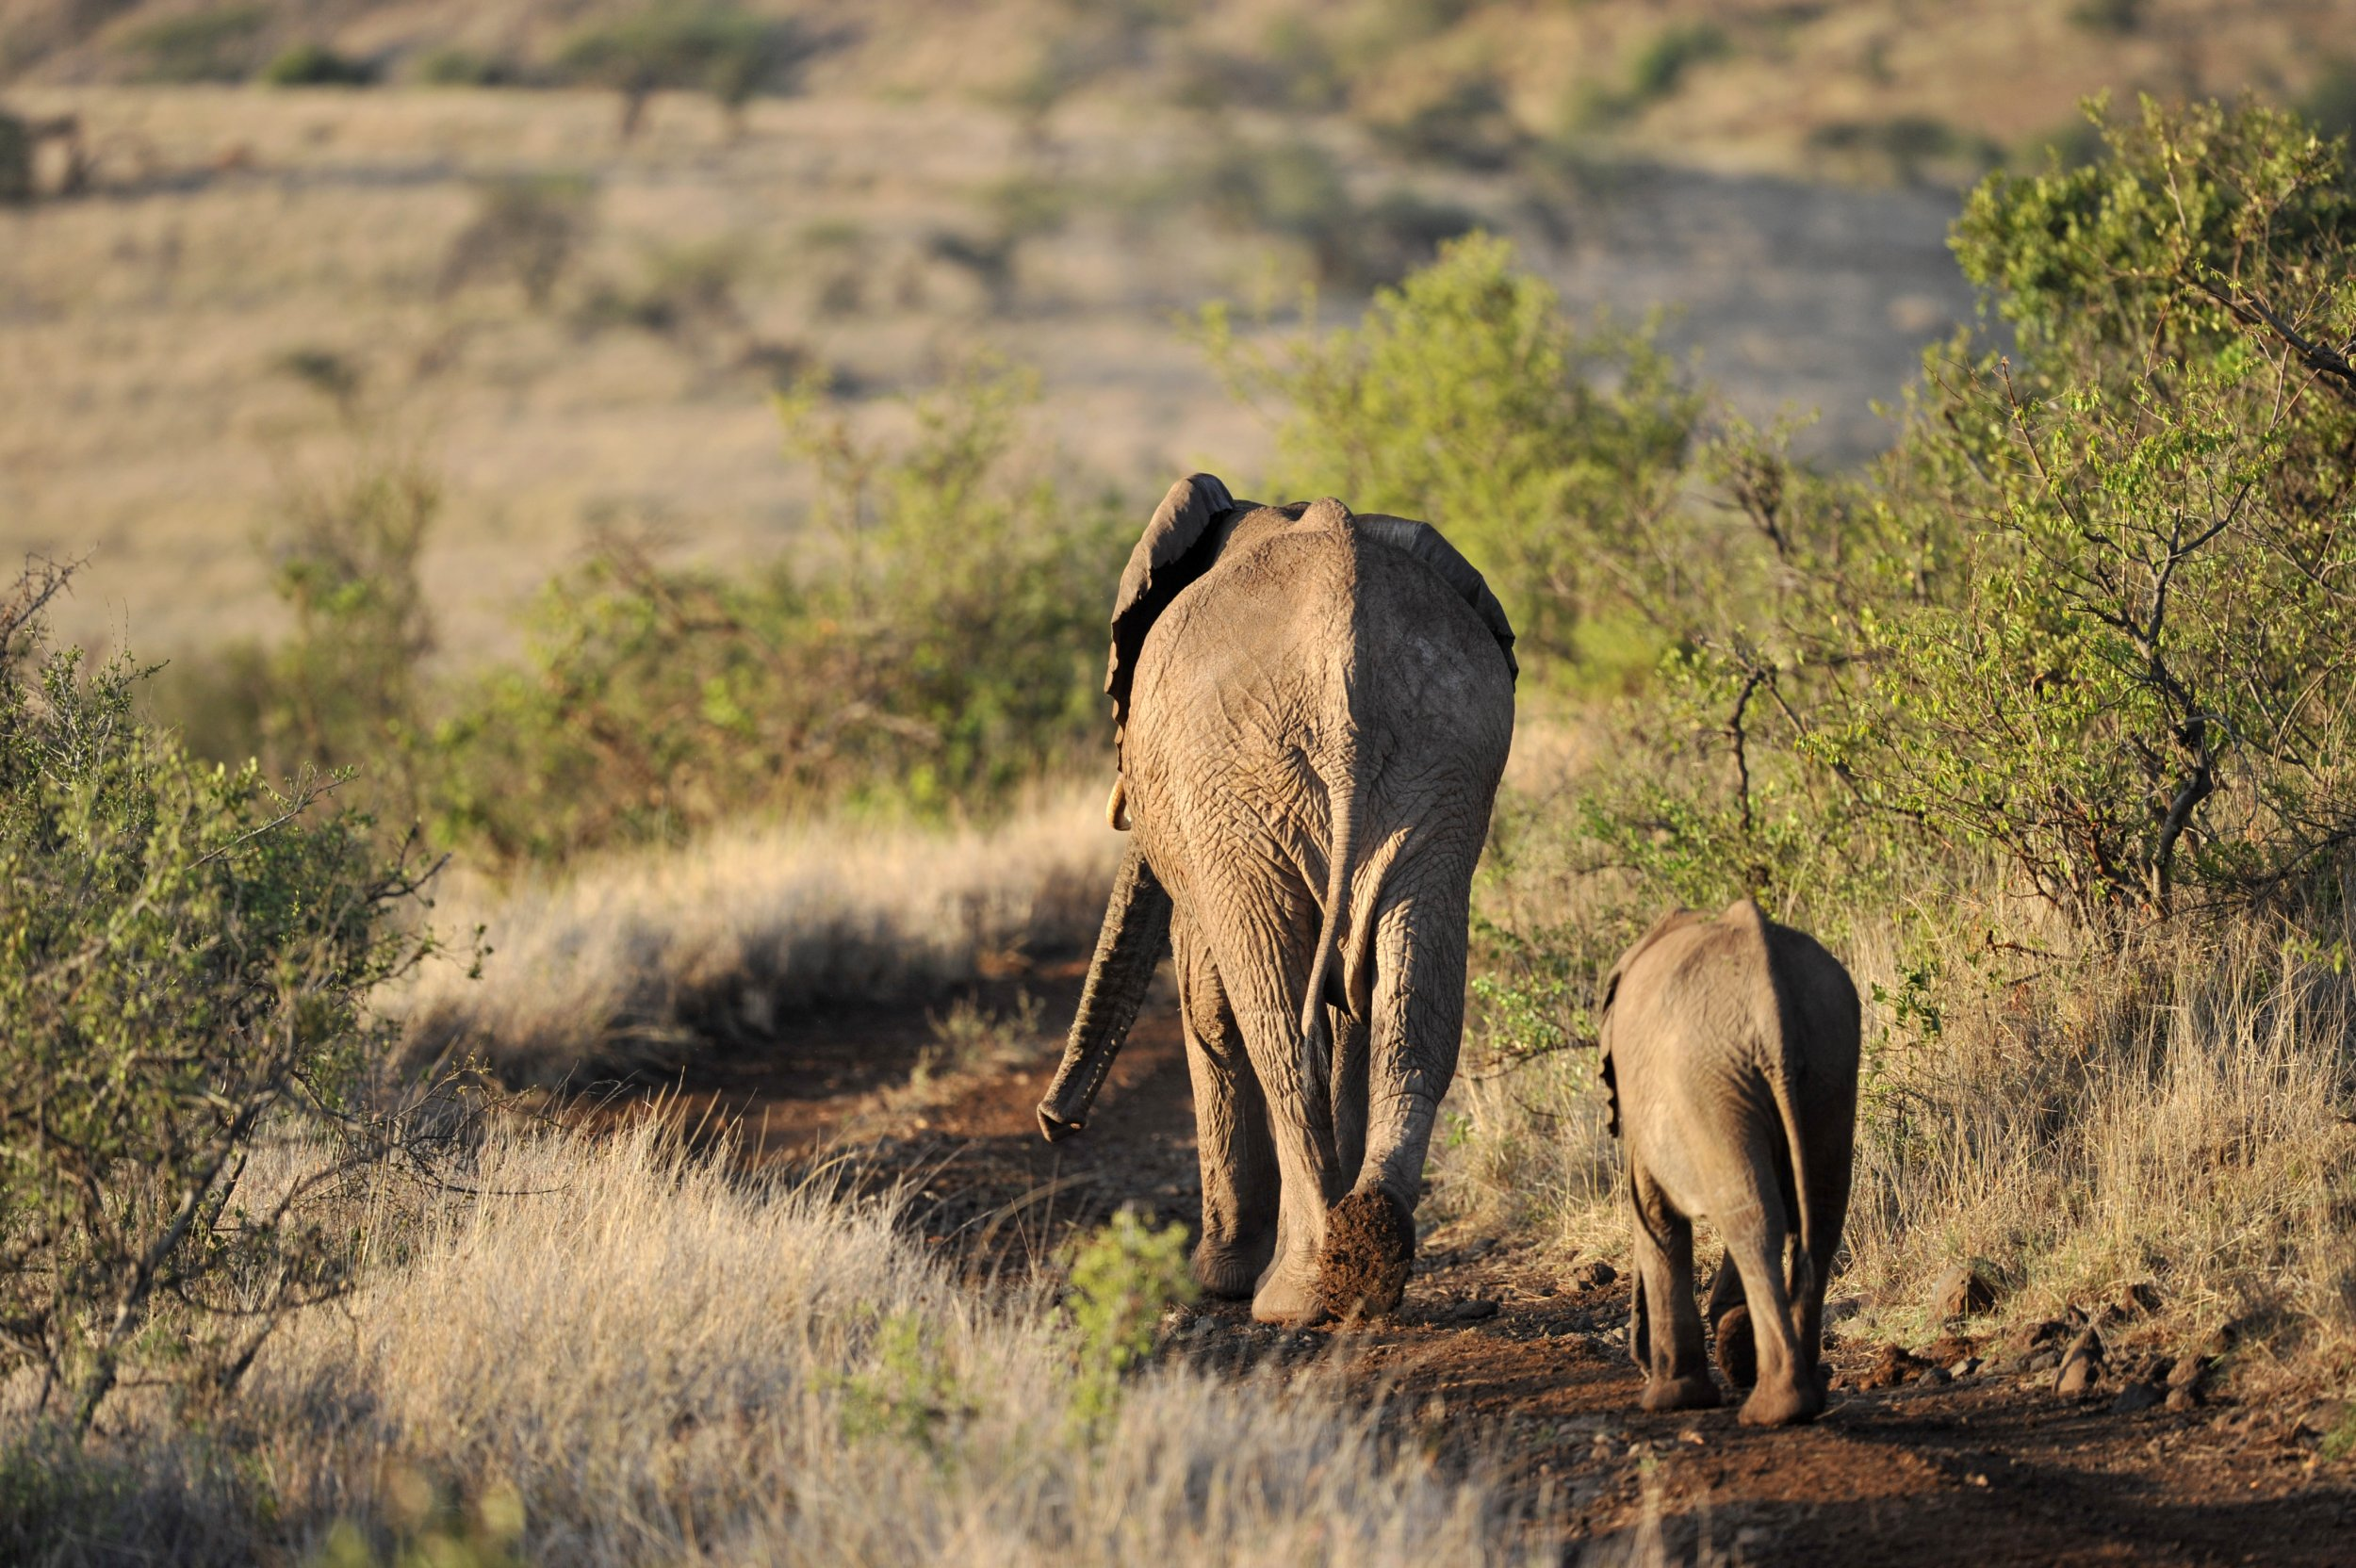 An elephant and her cub at the Lewa Wildlife Conservancy, Kenya.